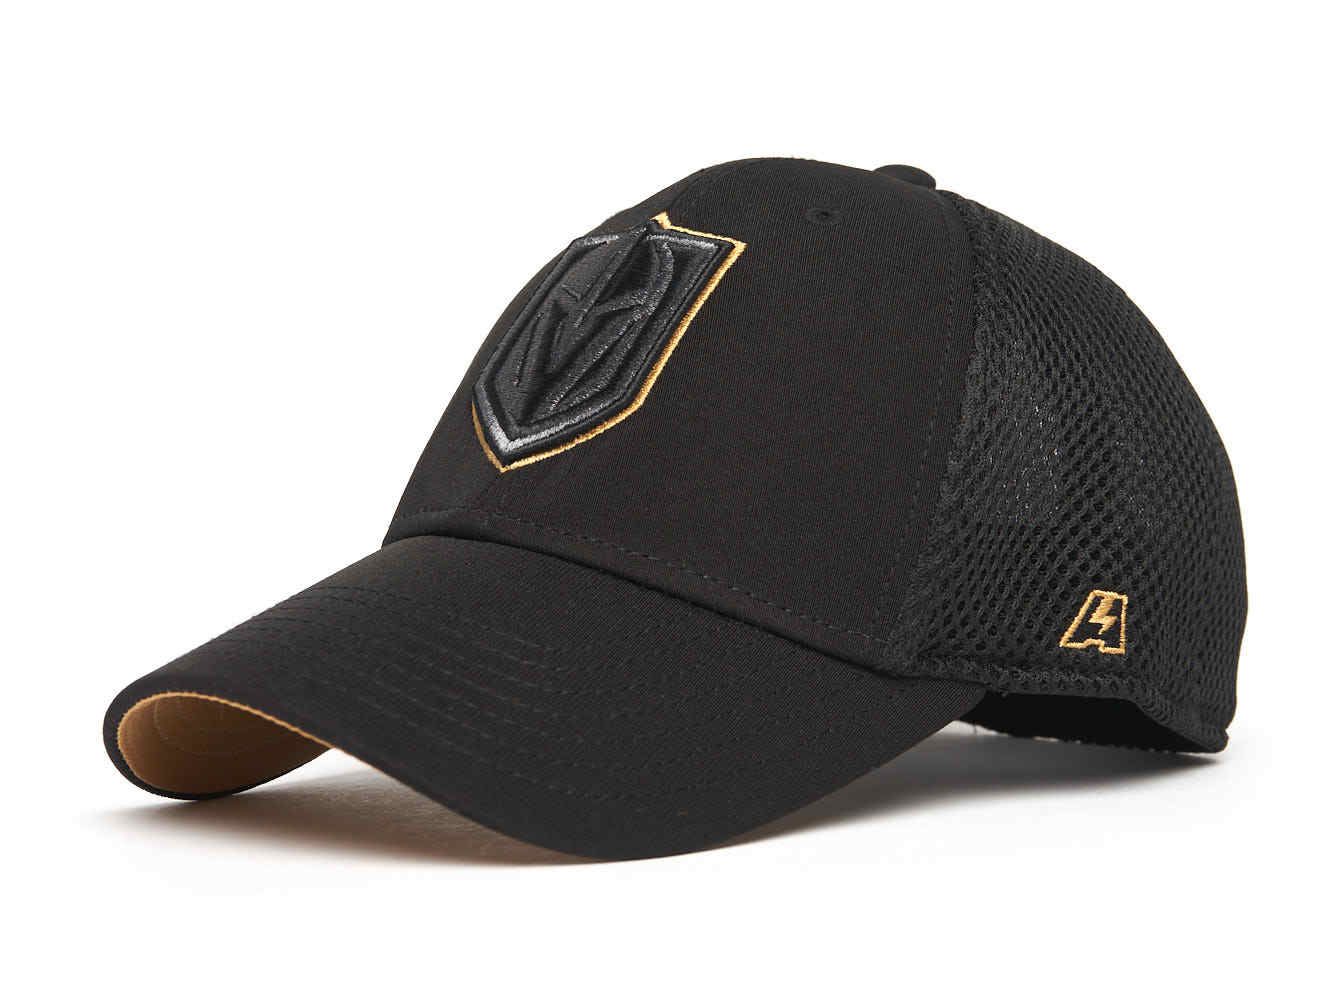 Бейсболка NHL Vegas Golden Knights (размер M/L)